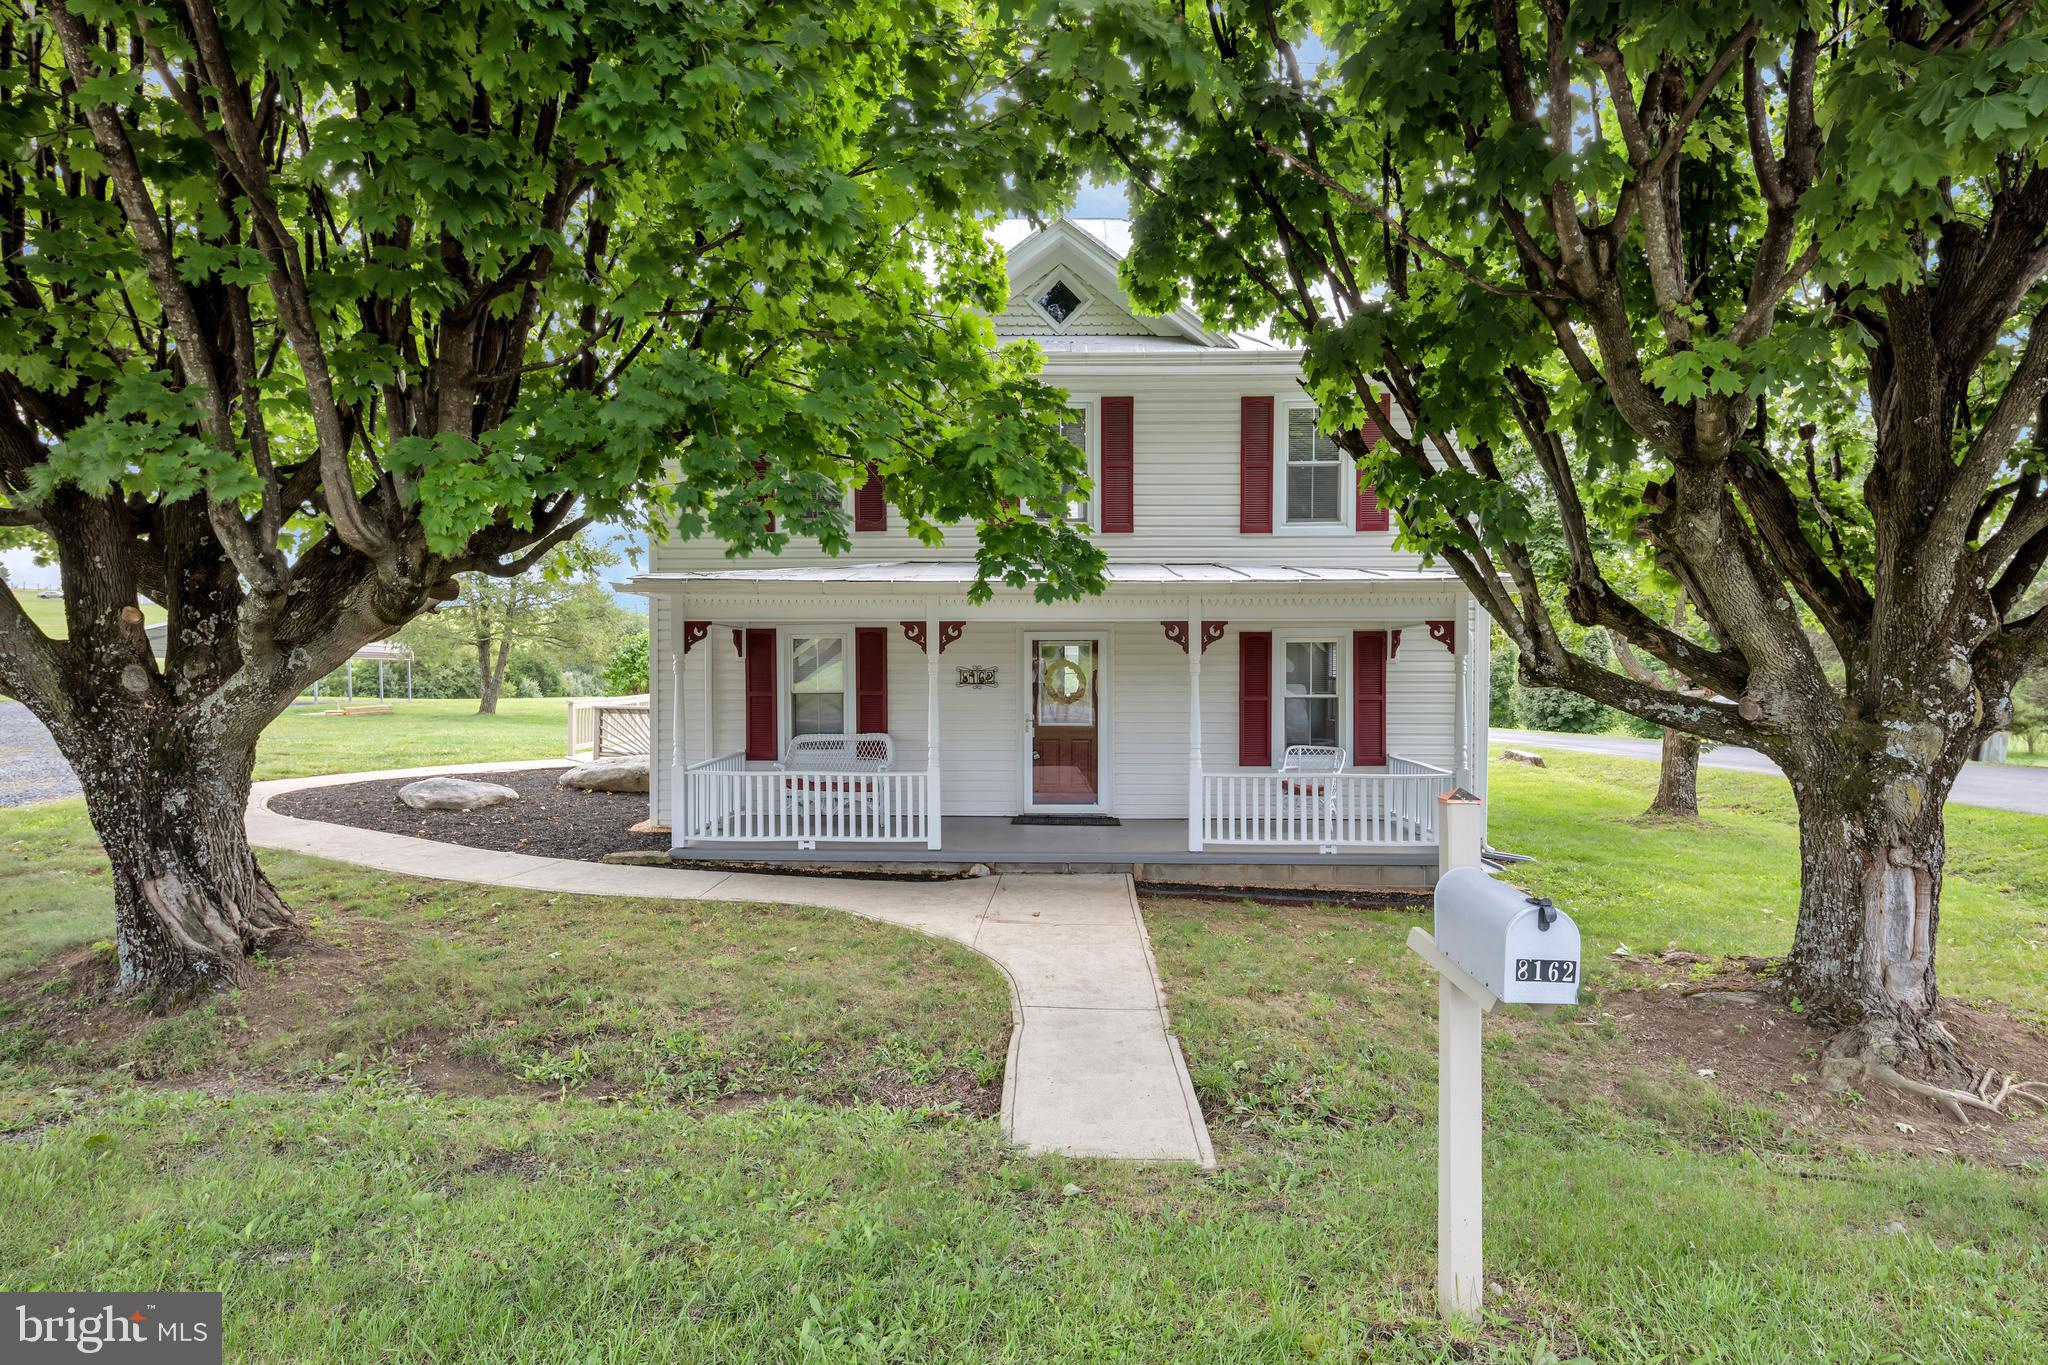 8162 BACK ROAD, MAURERTOWN, VA 22644